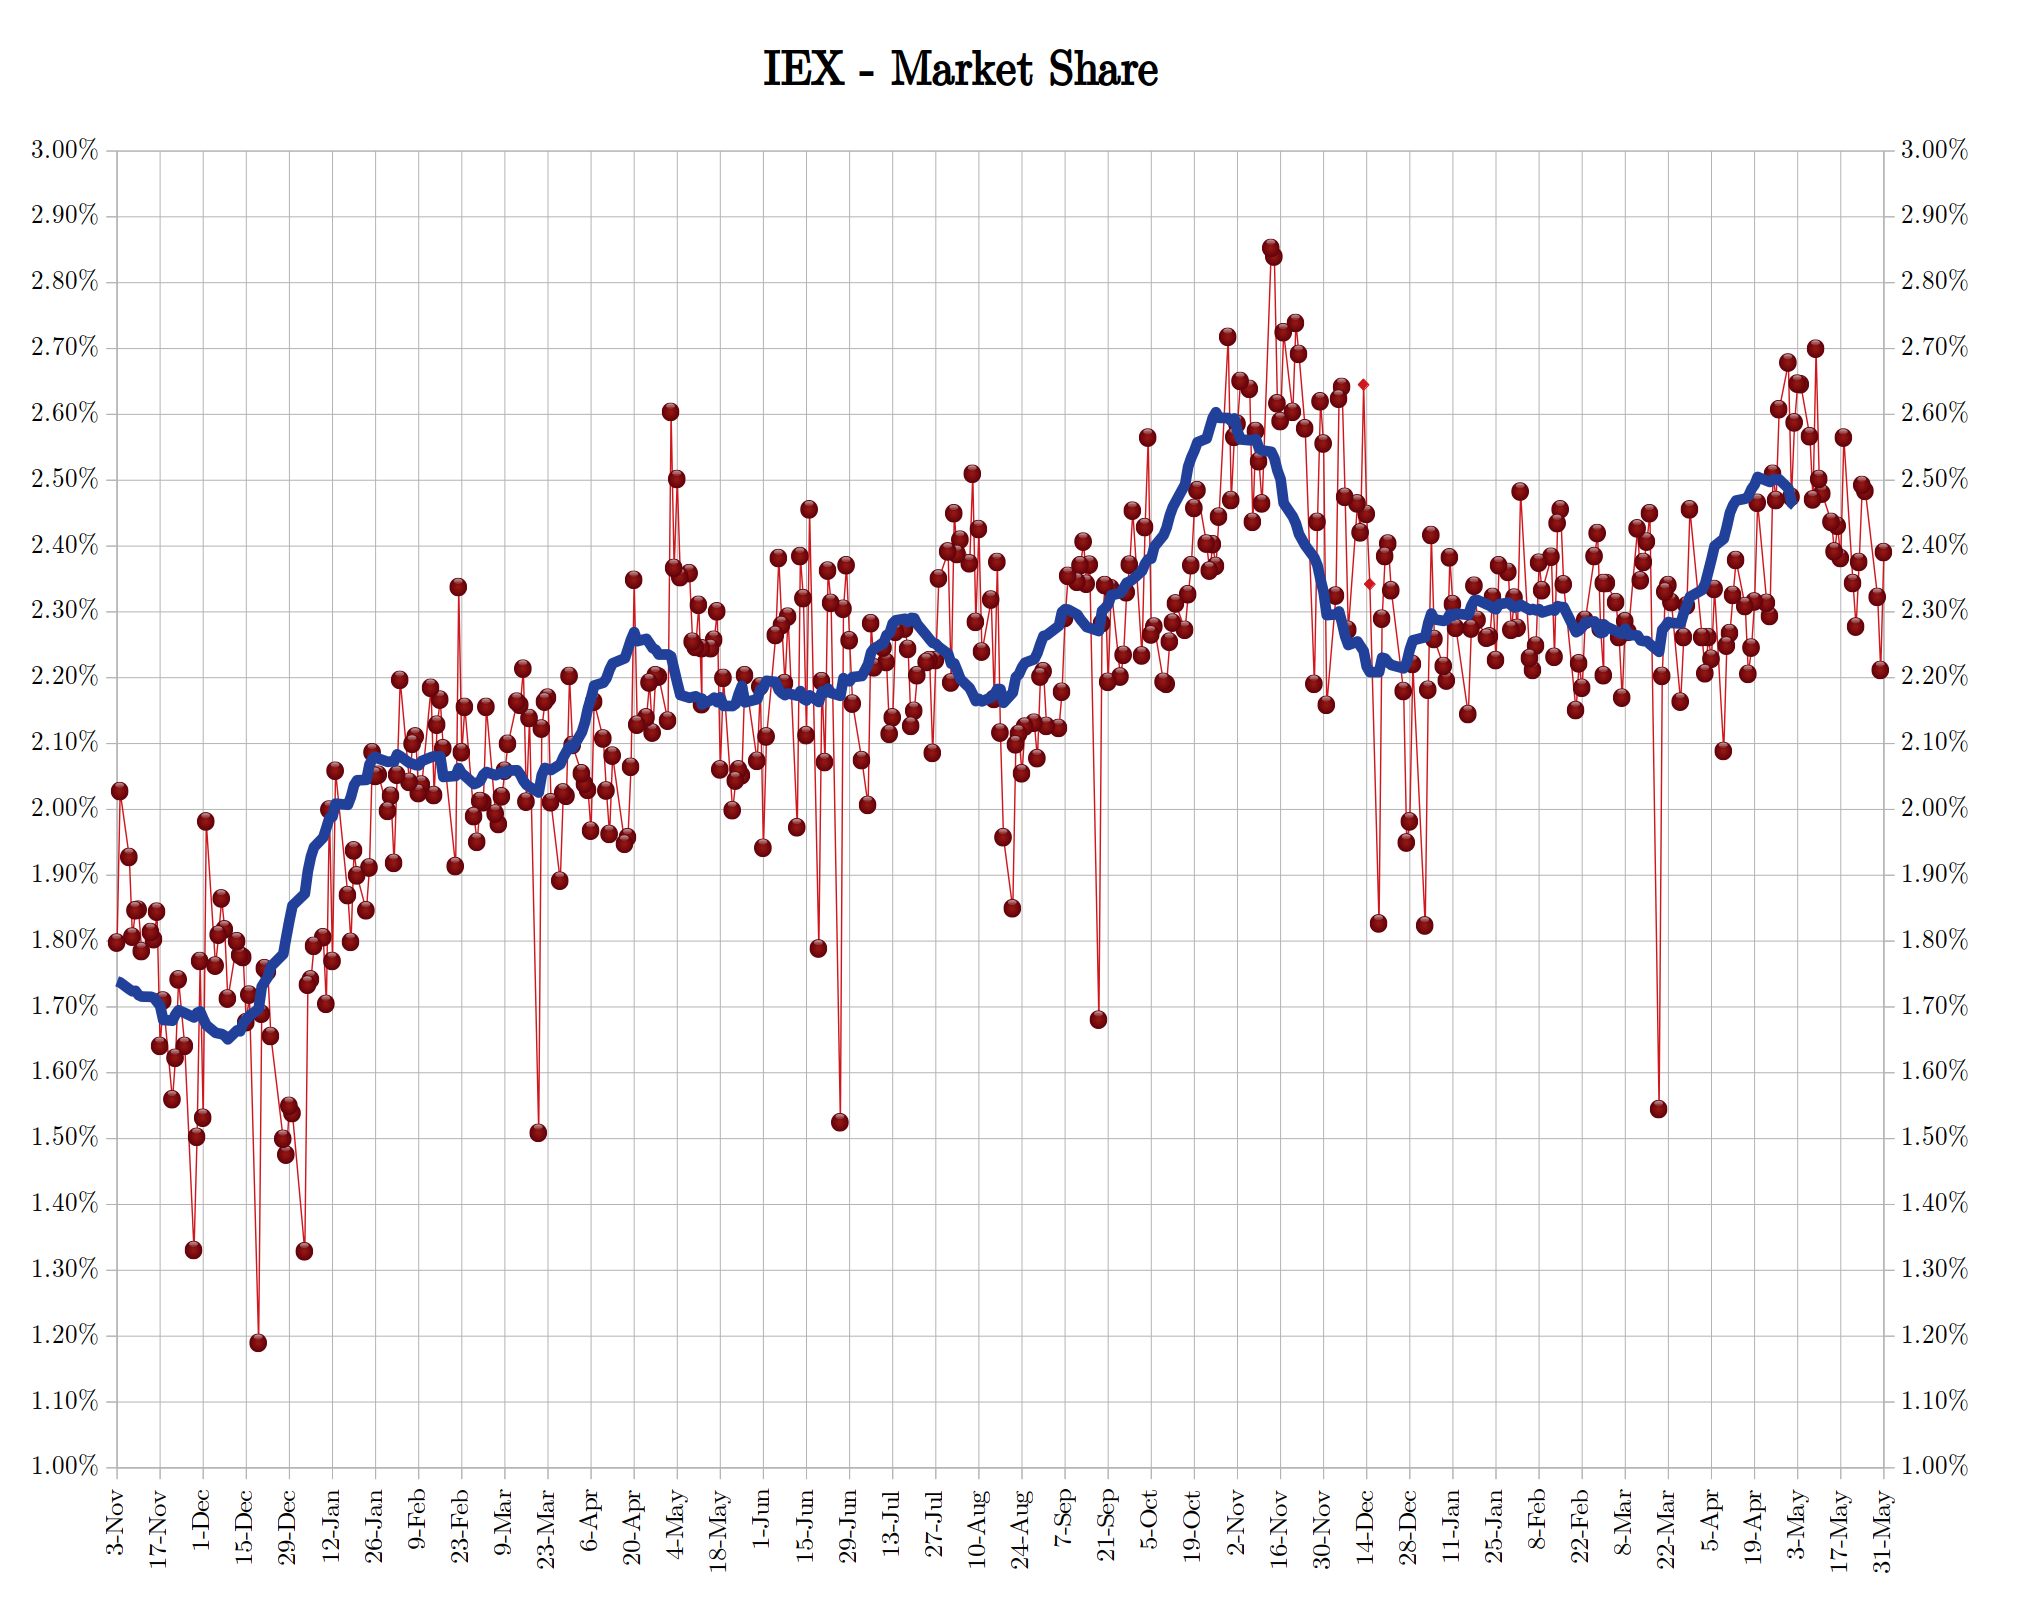 IEX Market Share May 2018